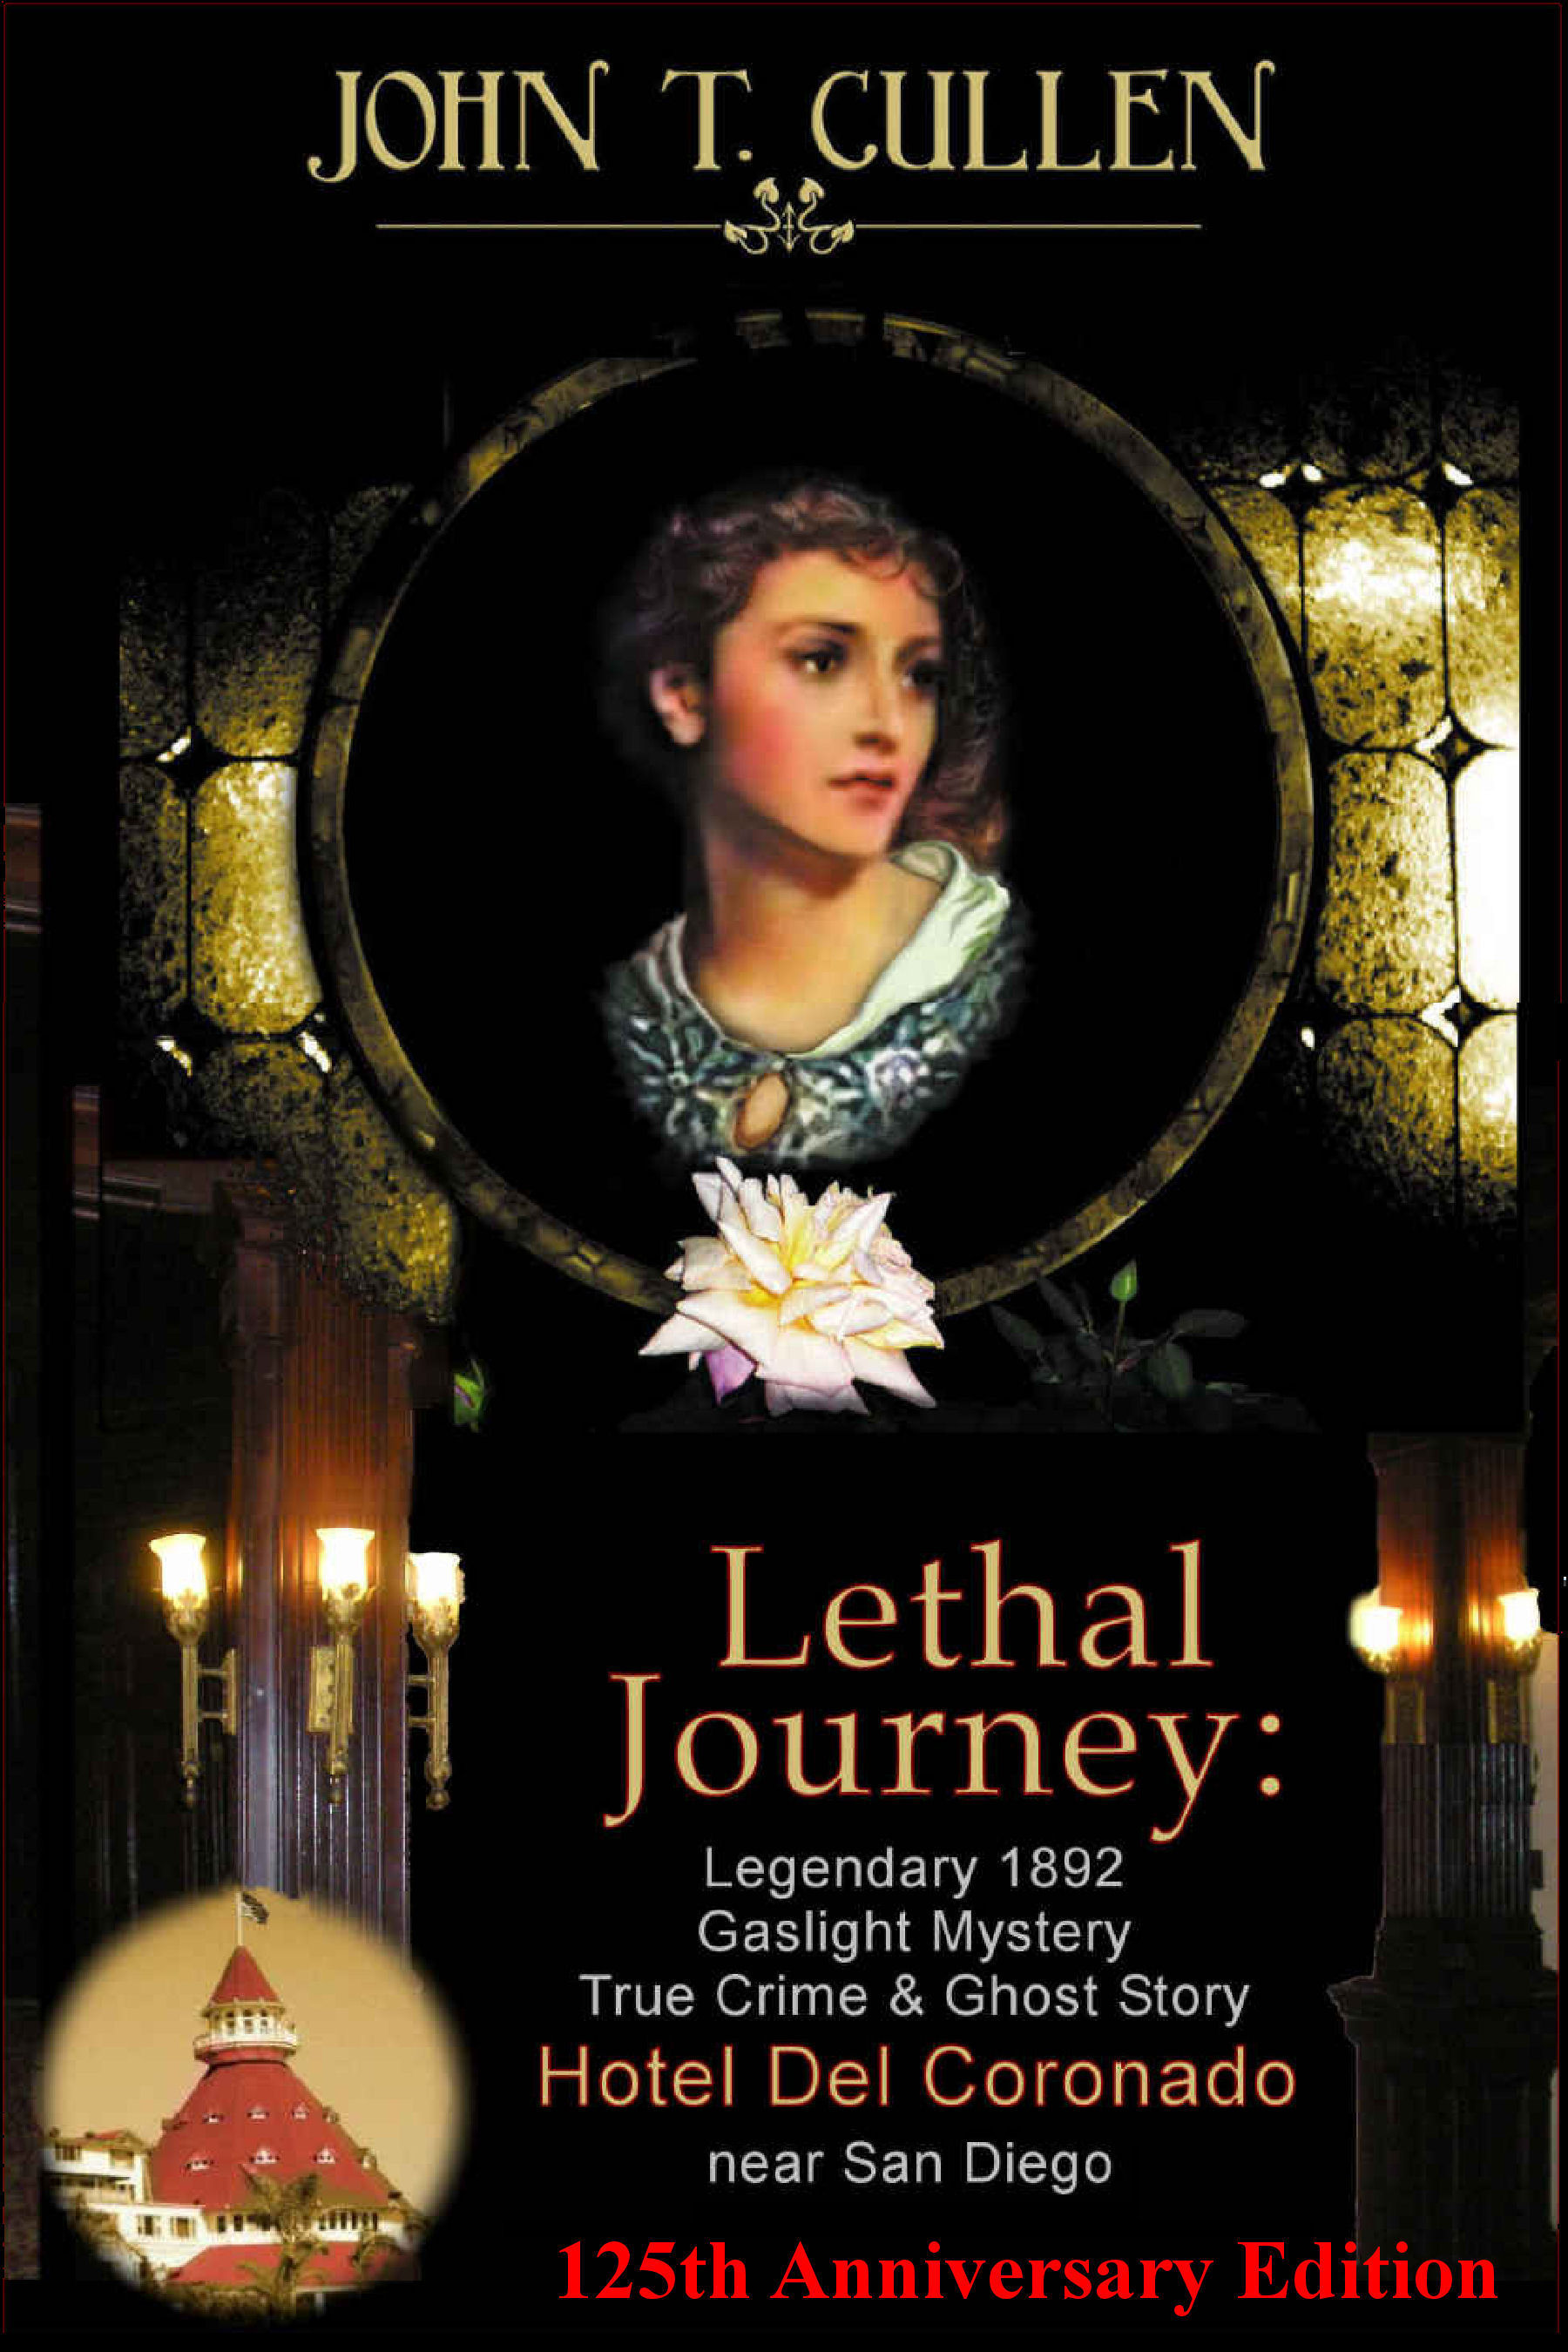 Click to see all three books - Lethal Journey - fiction - a dramatization based on Dead Move by John T. Cullen, and the best of the legend.